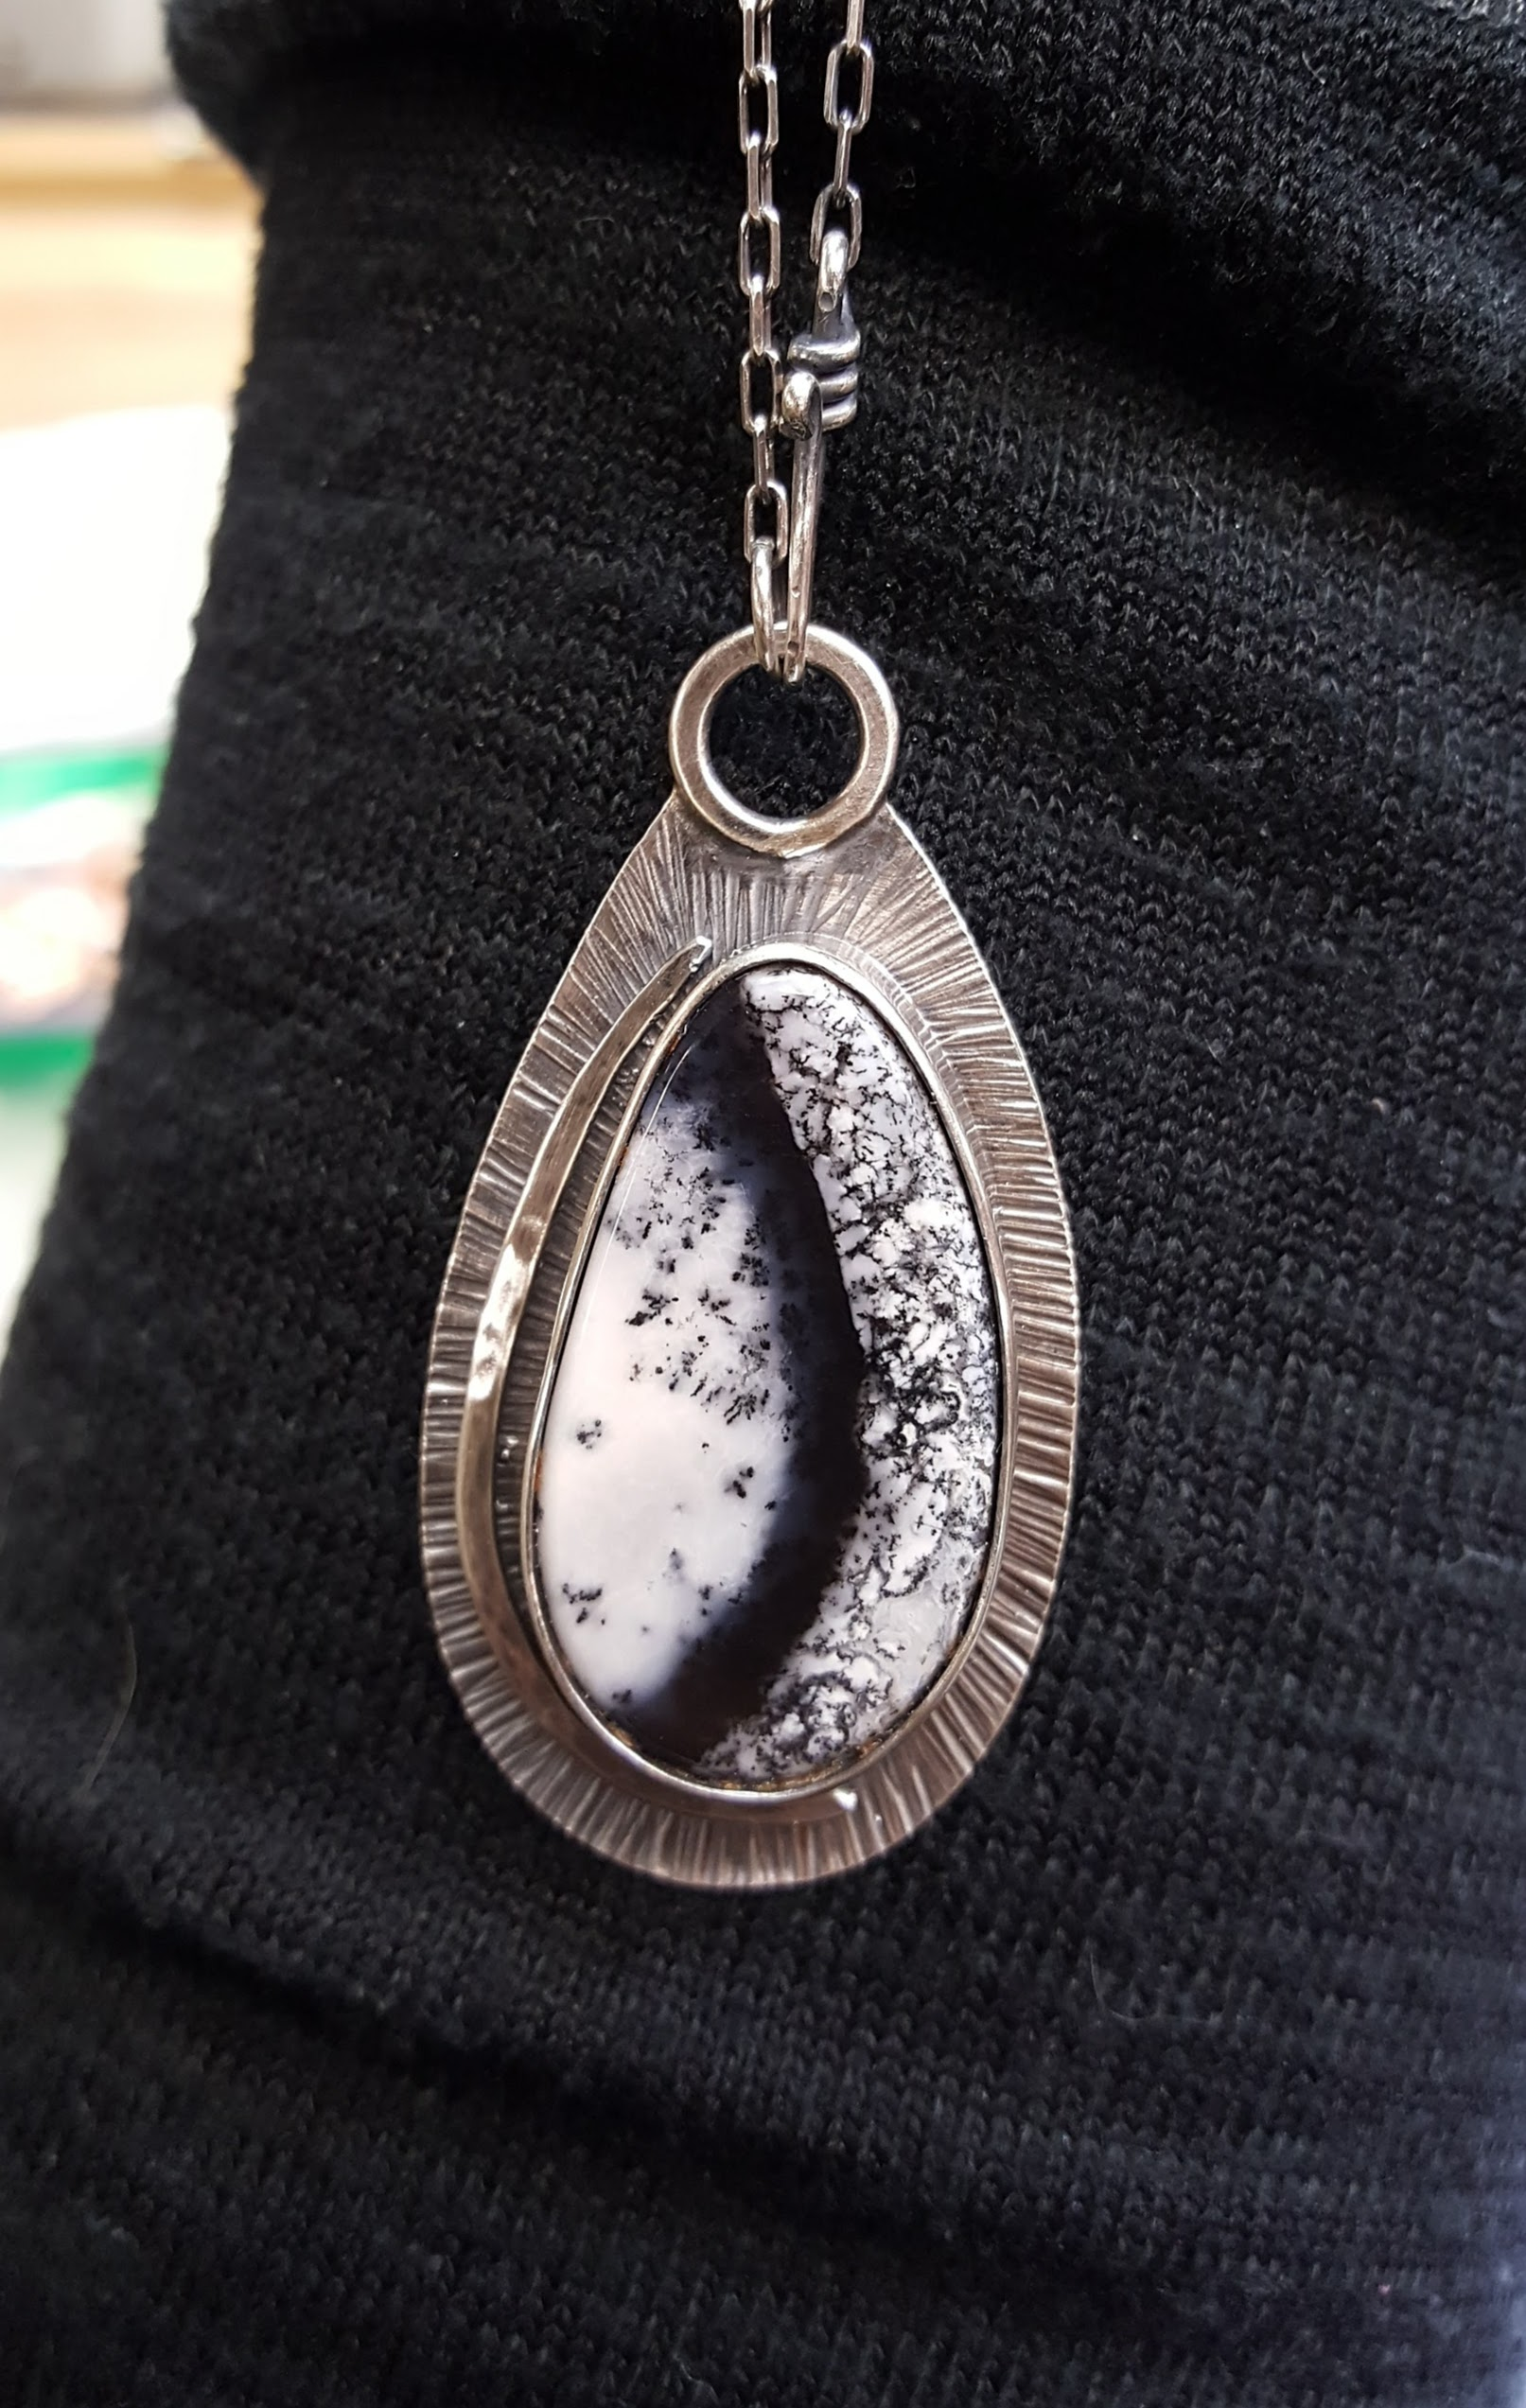 an image of the necklace